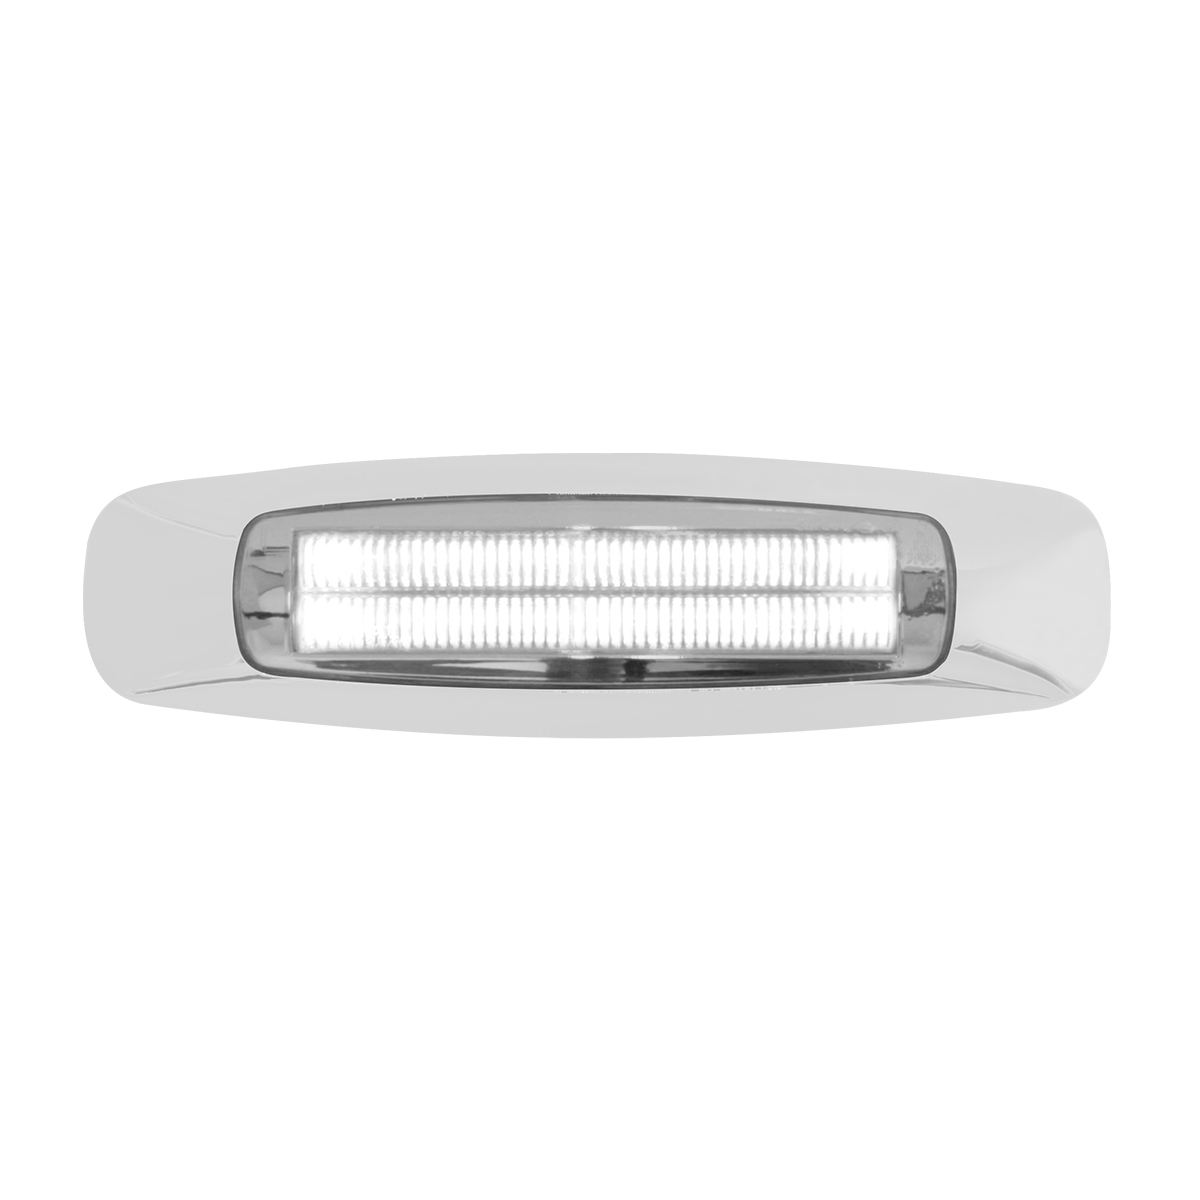 "74844 5-3/4"" Rectangular Prime LED Marker Light in White/Clear"